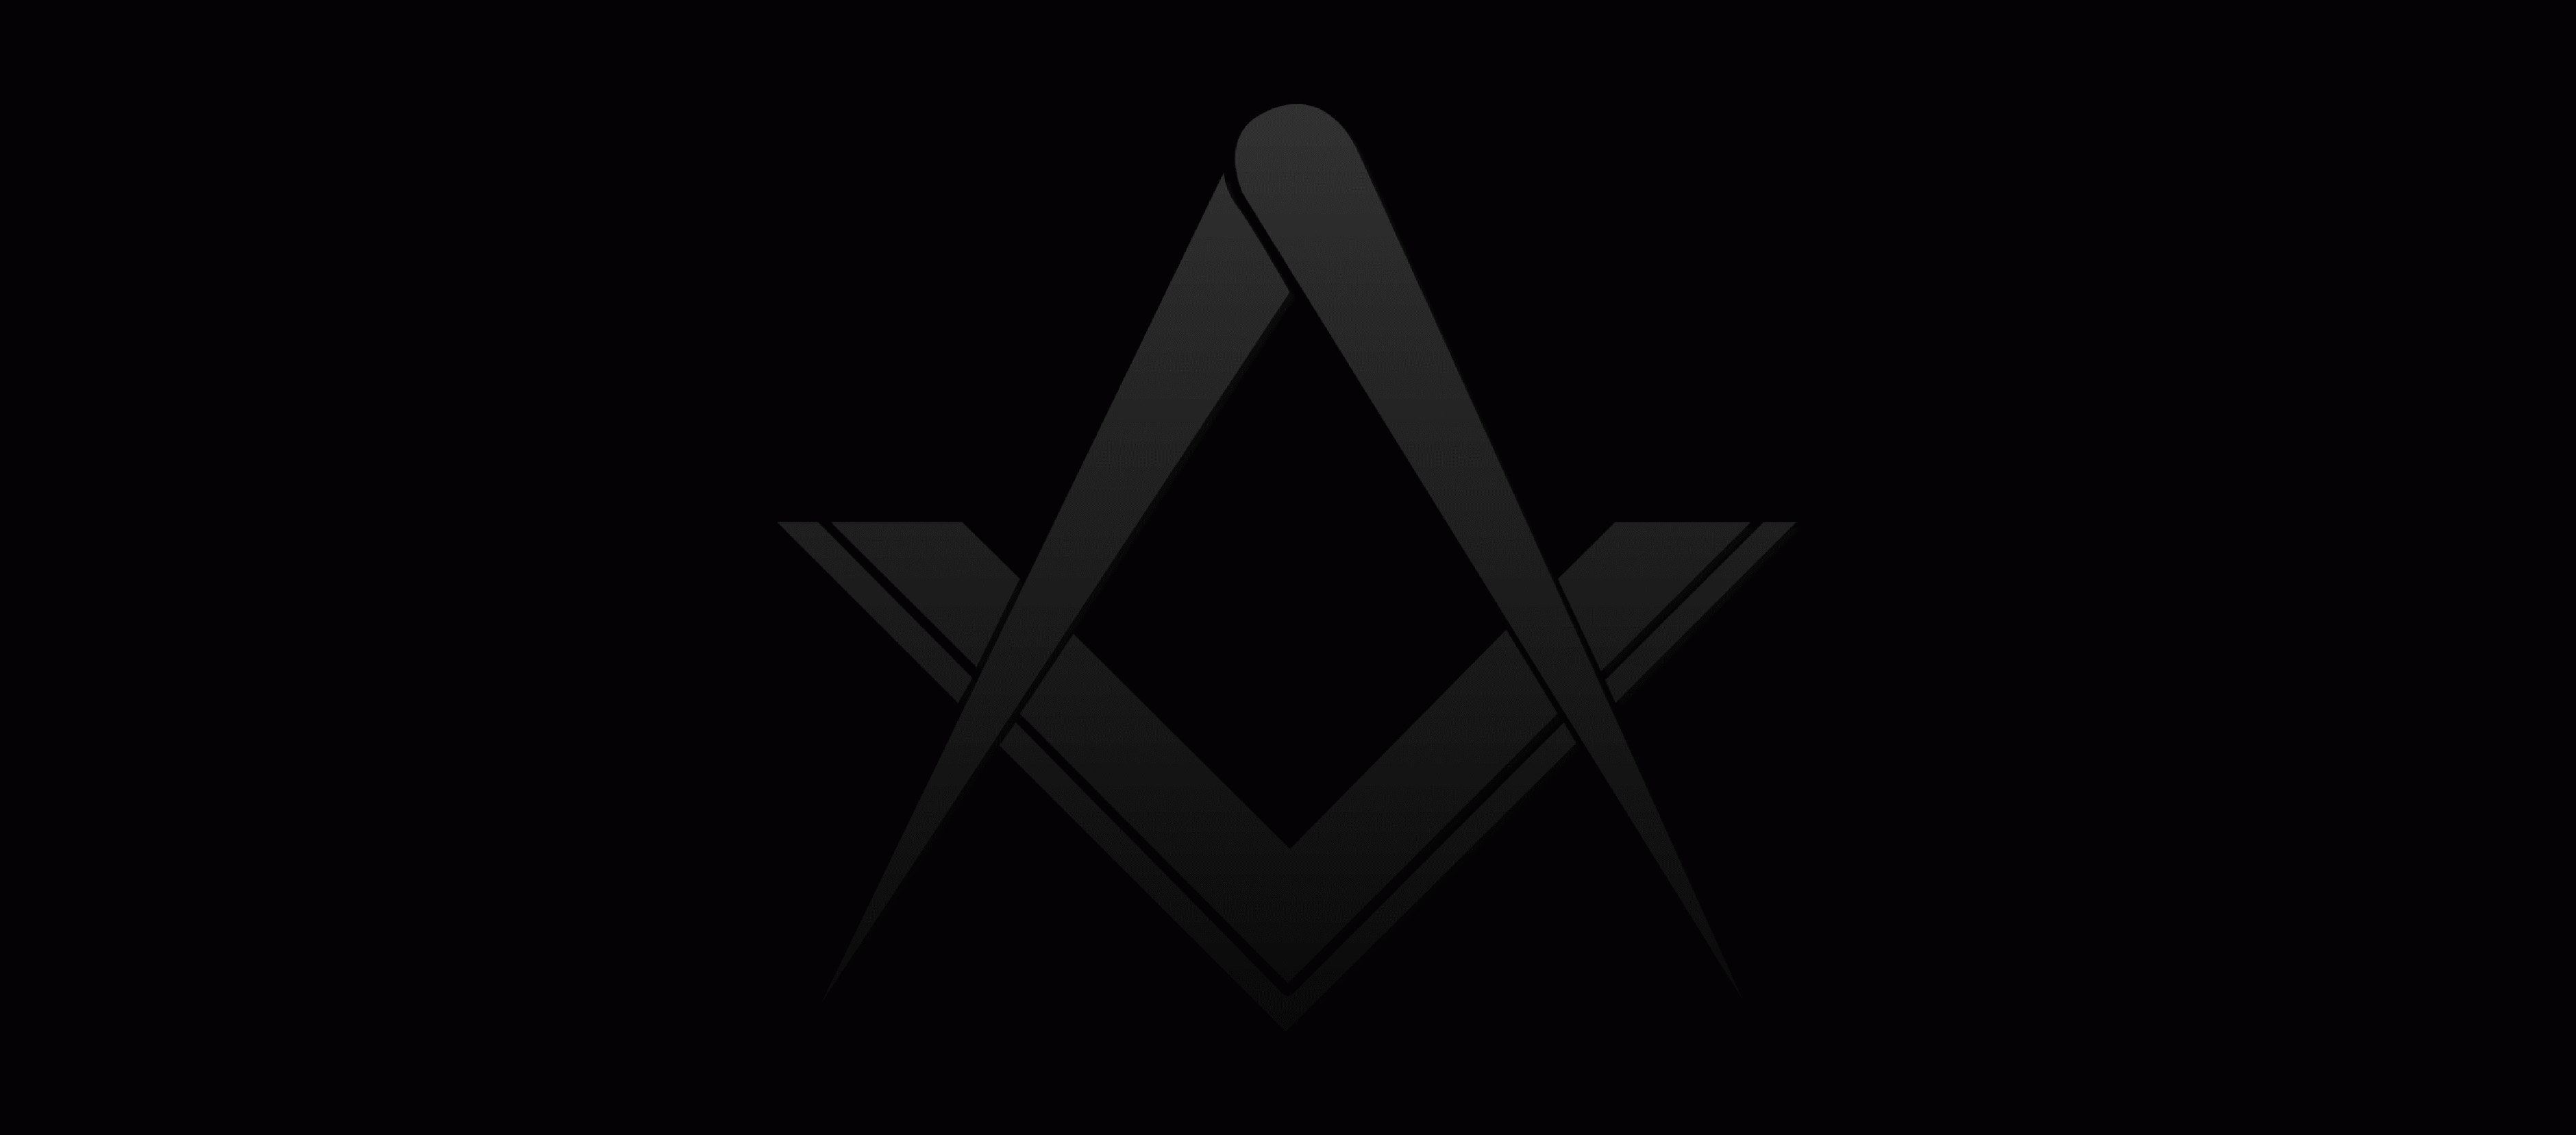 53] Masonic Wallpaper on WallpaperSafari 3760x1656